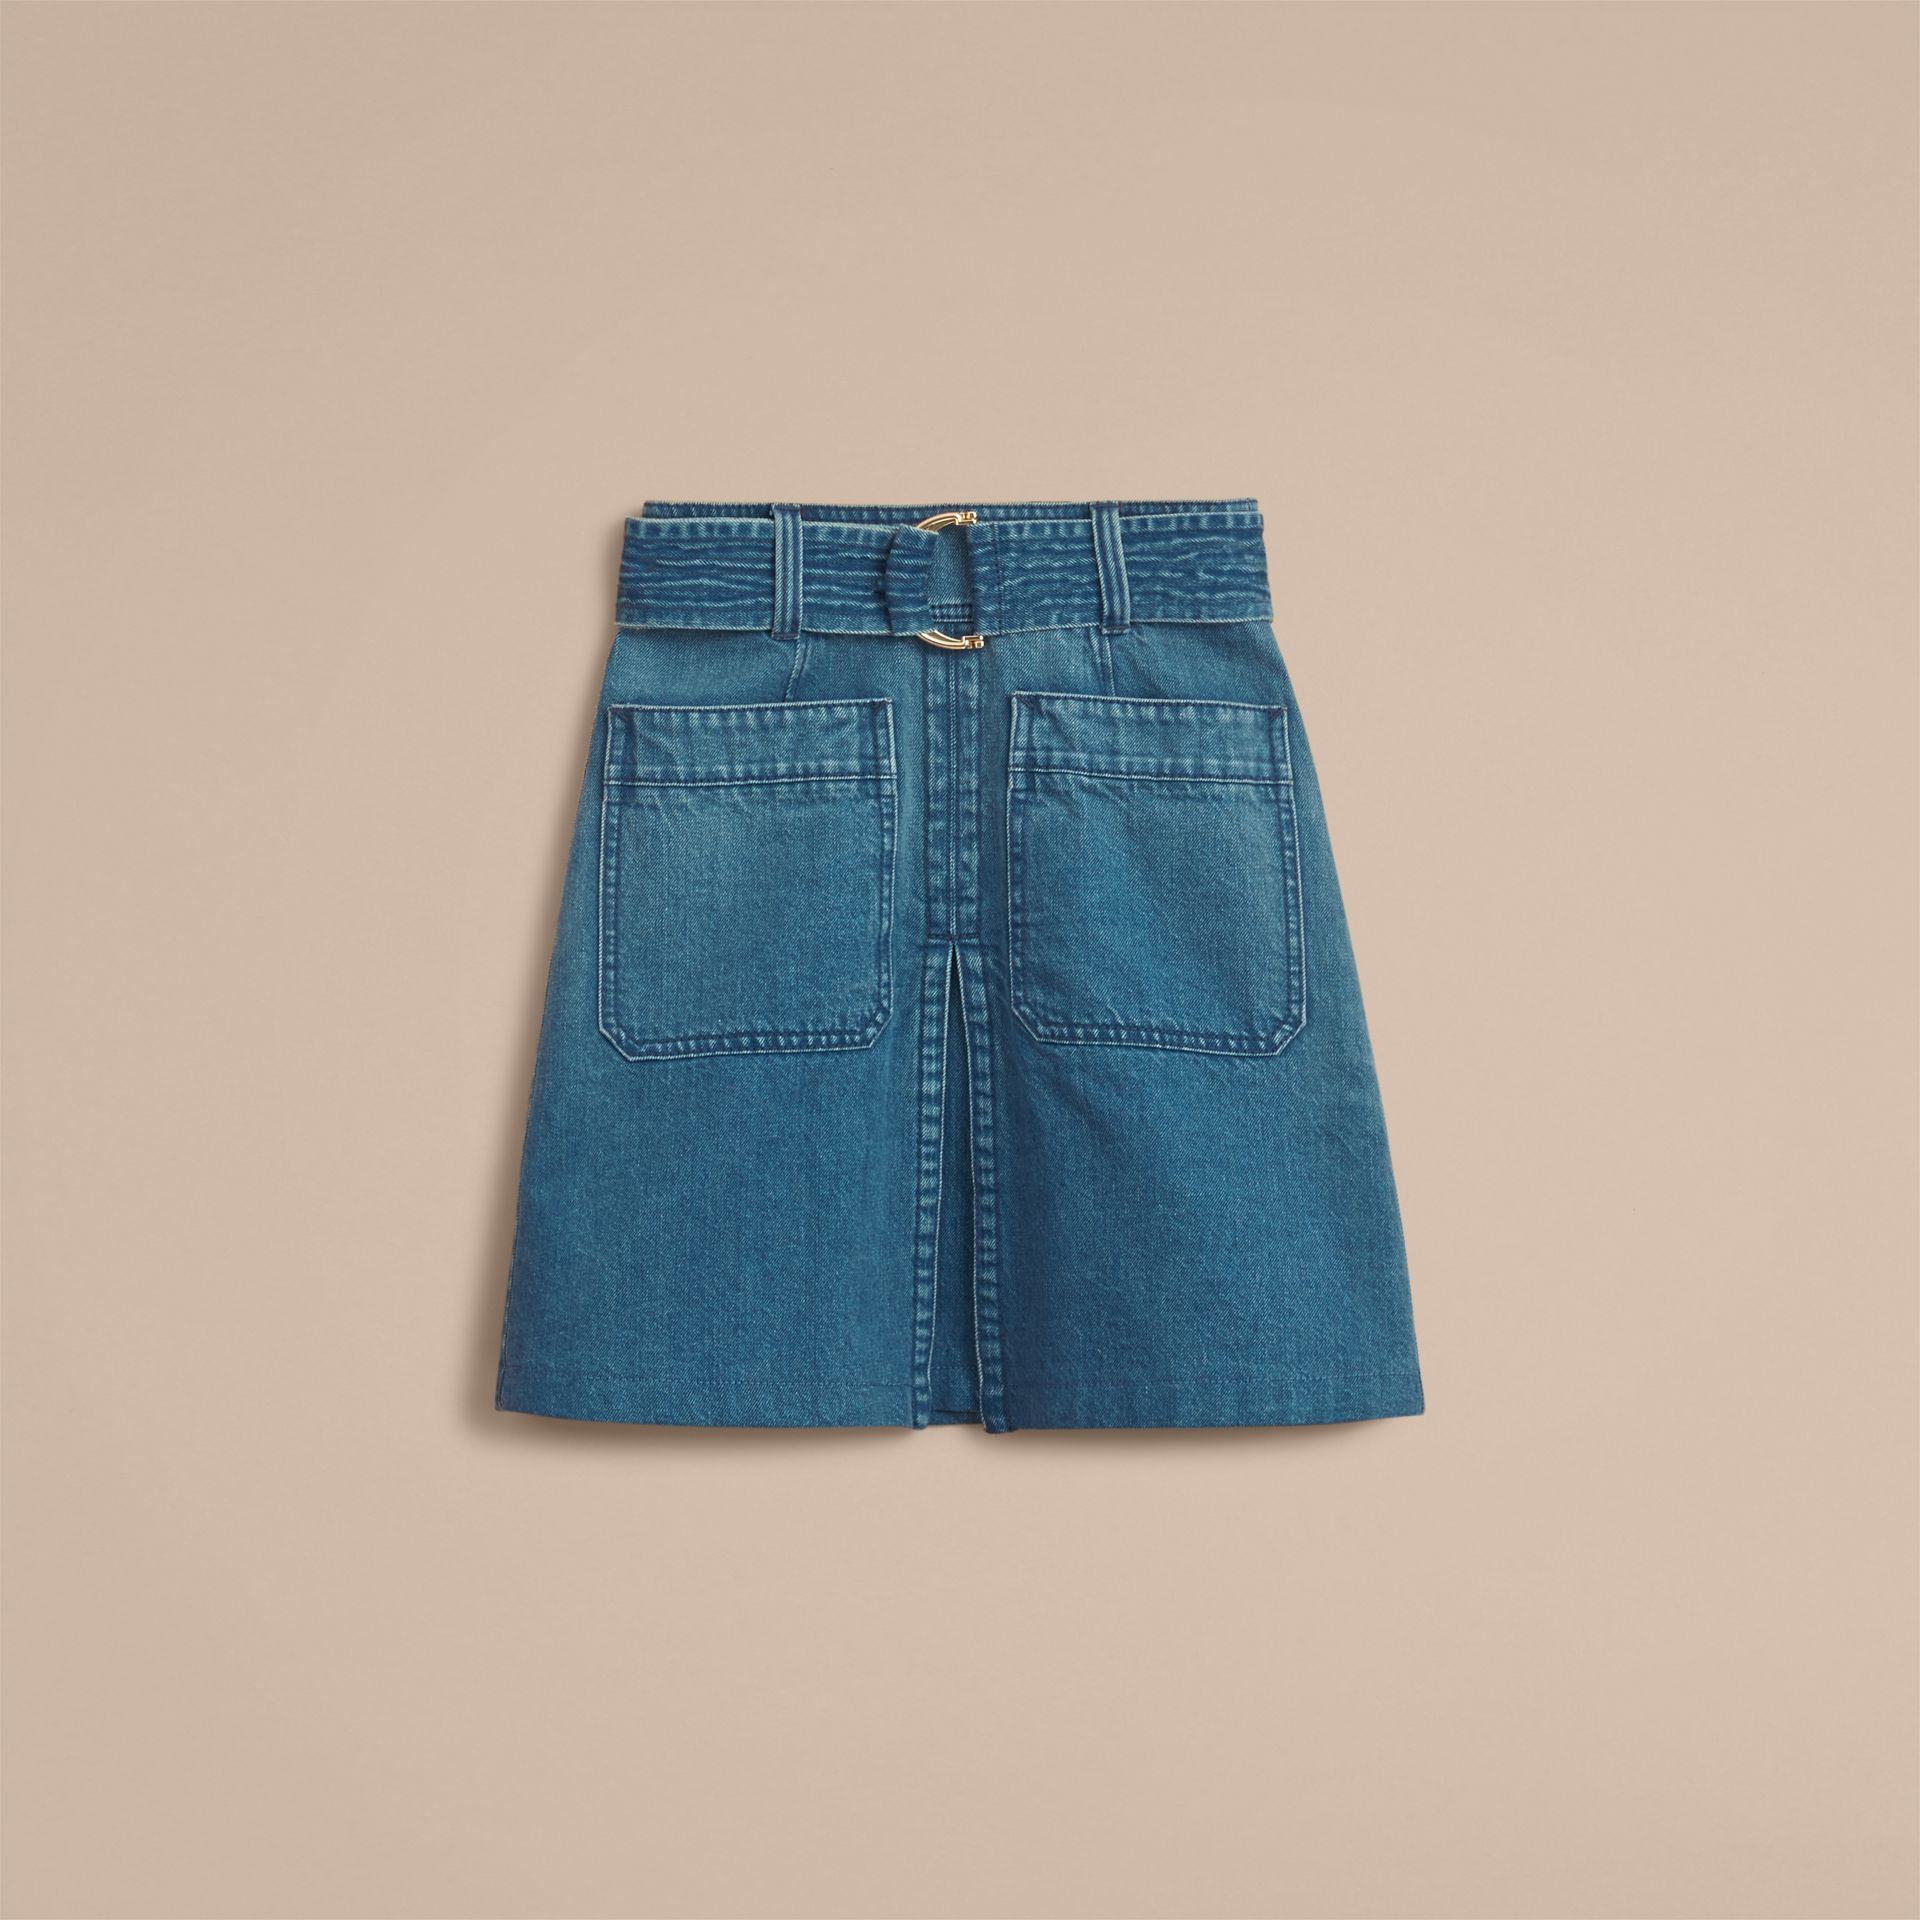 Patch Pocket Denim A-line Skirt in Indigo Blue - Women | Burberry United States - gallery image 3